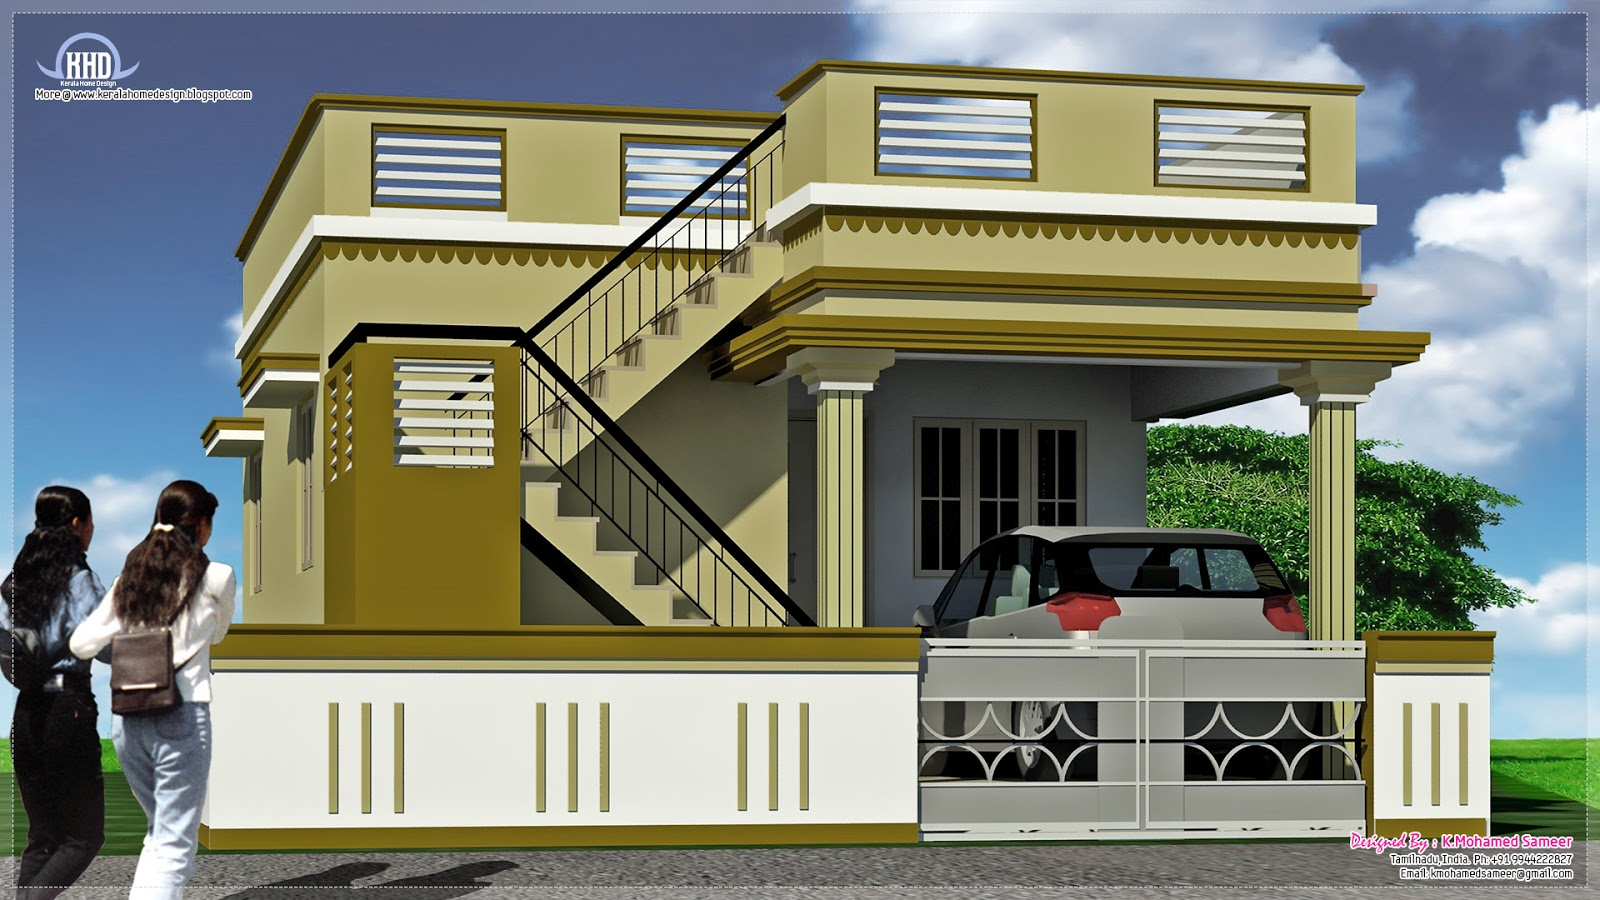 2 south indian house exterior designs house design plans for Best exterior home designs in india